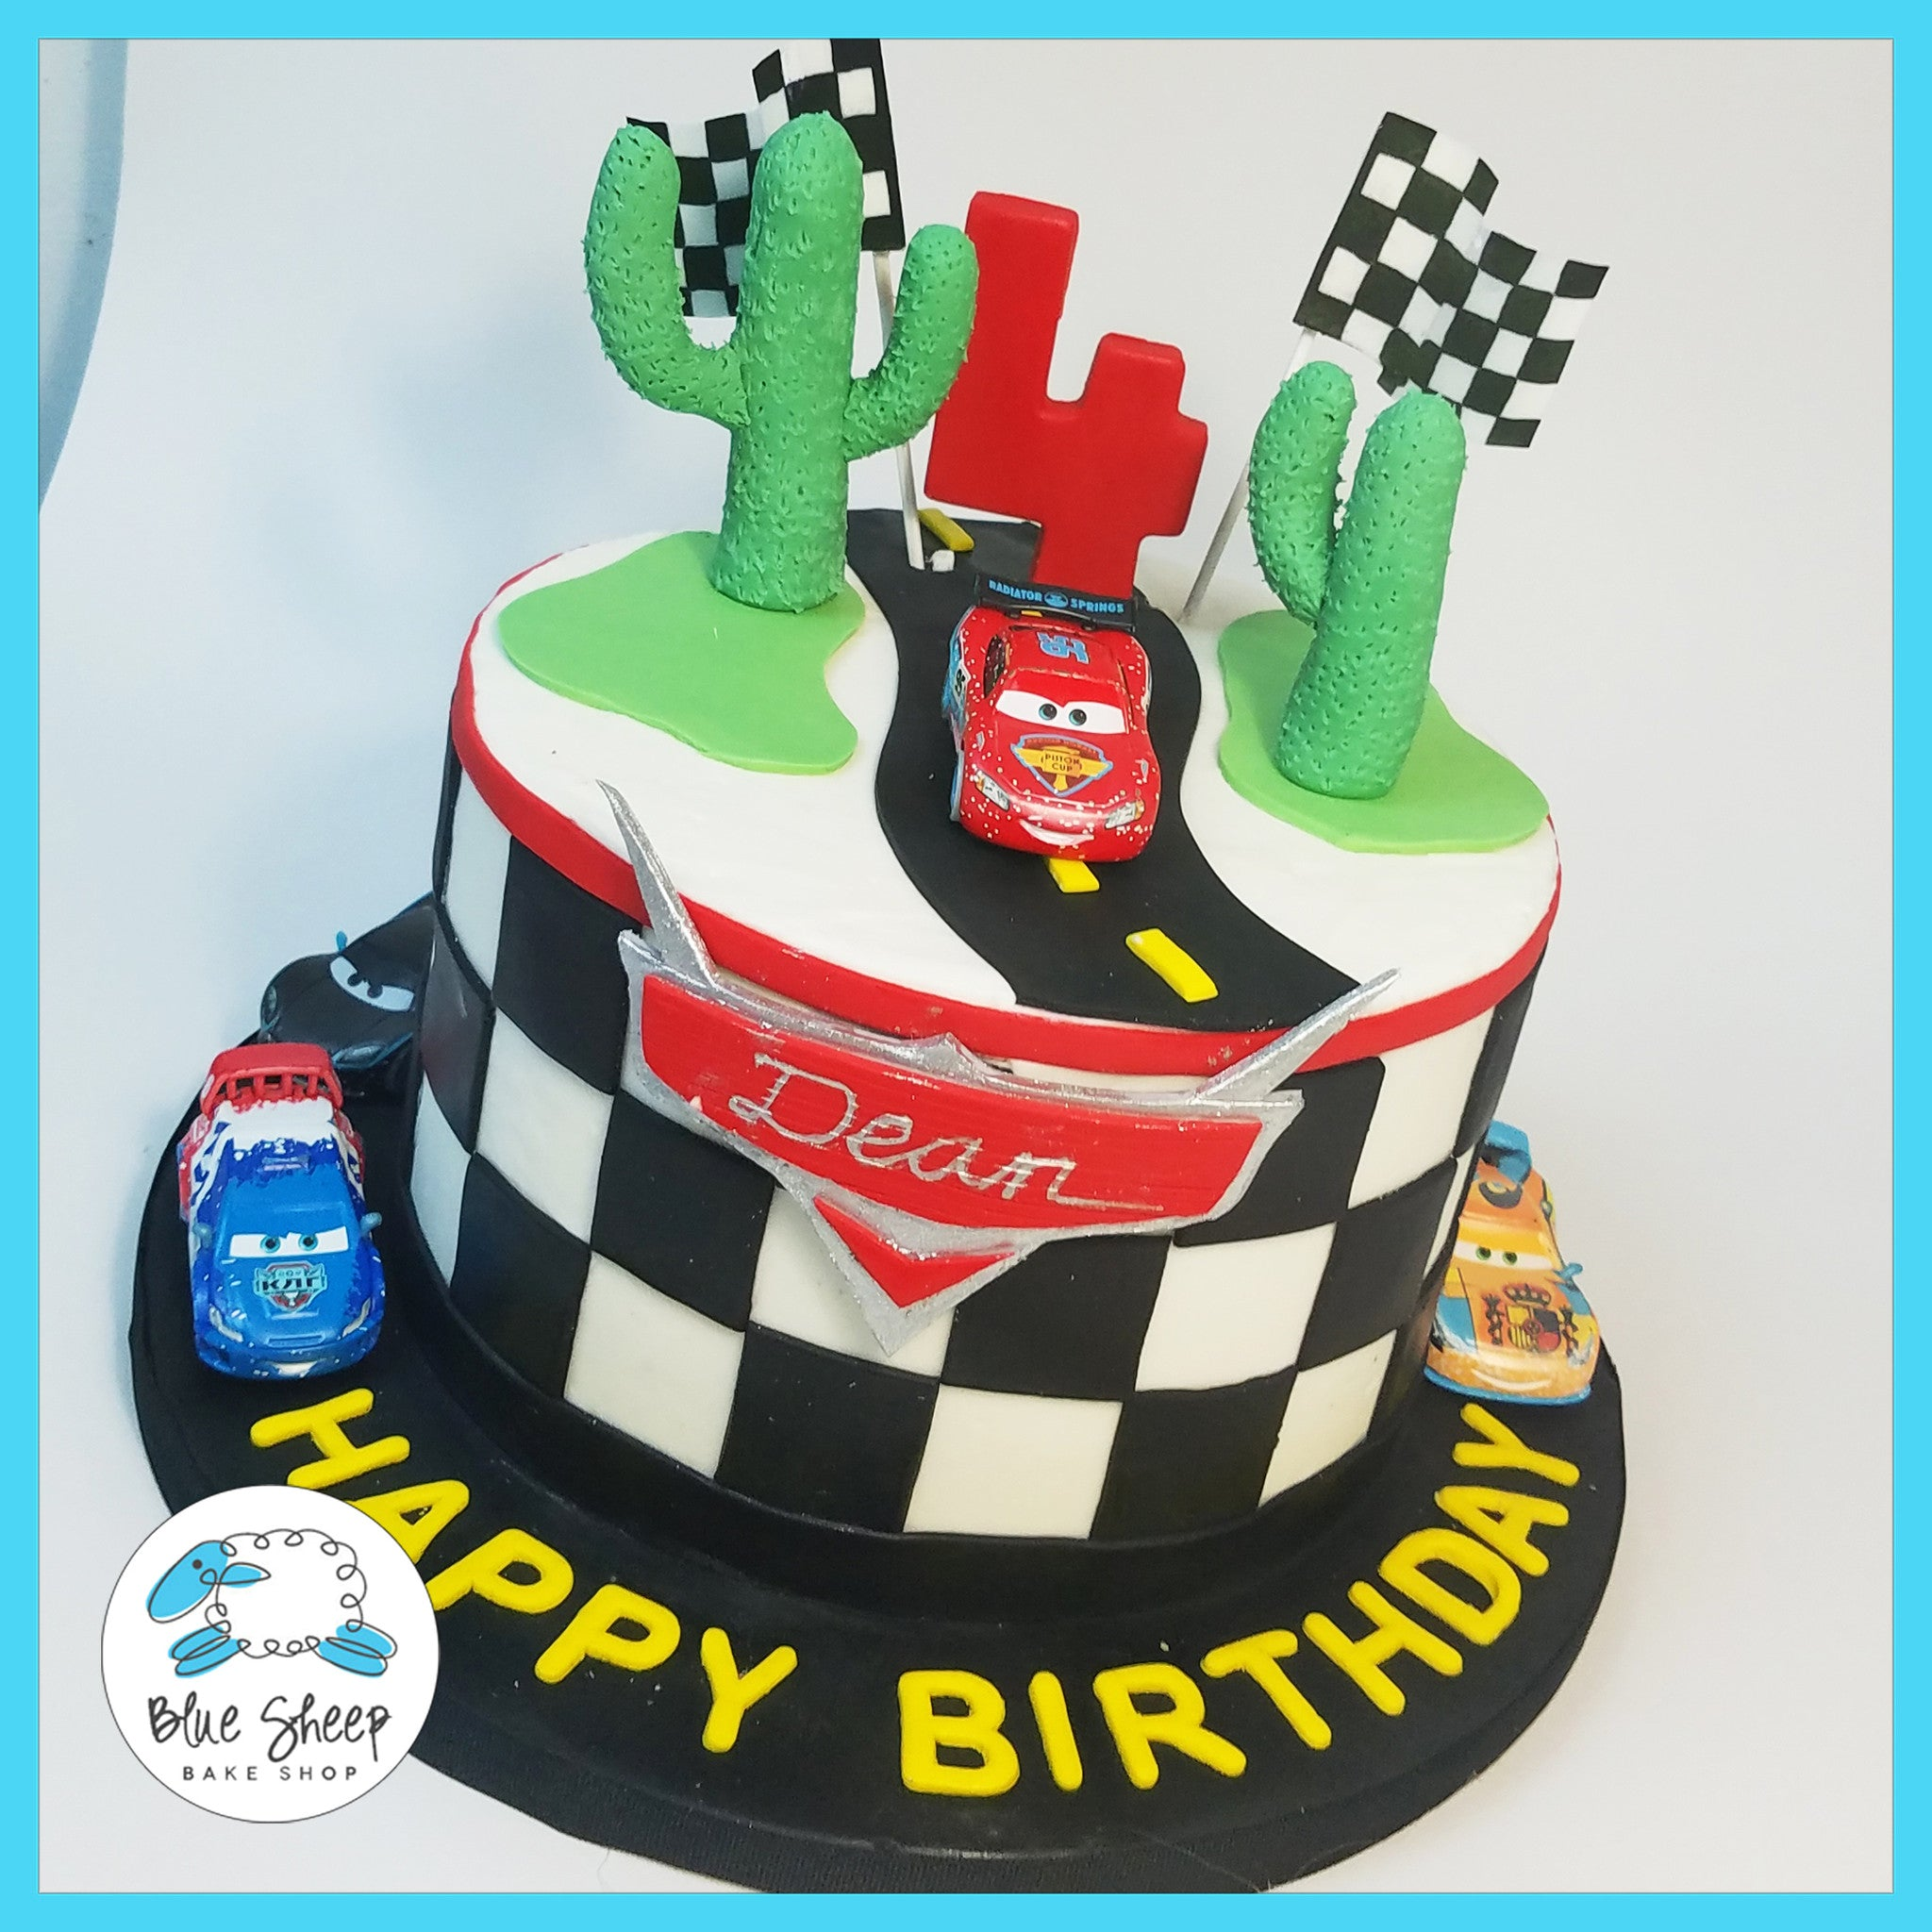 Groovy Lightning Mcqueen Birthday Cake Blue Sheep Bake Shop Personalised Birthday Cards Cominlily Jamesorg